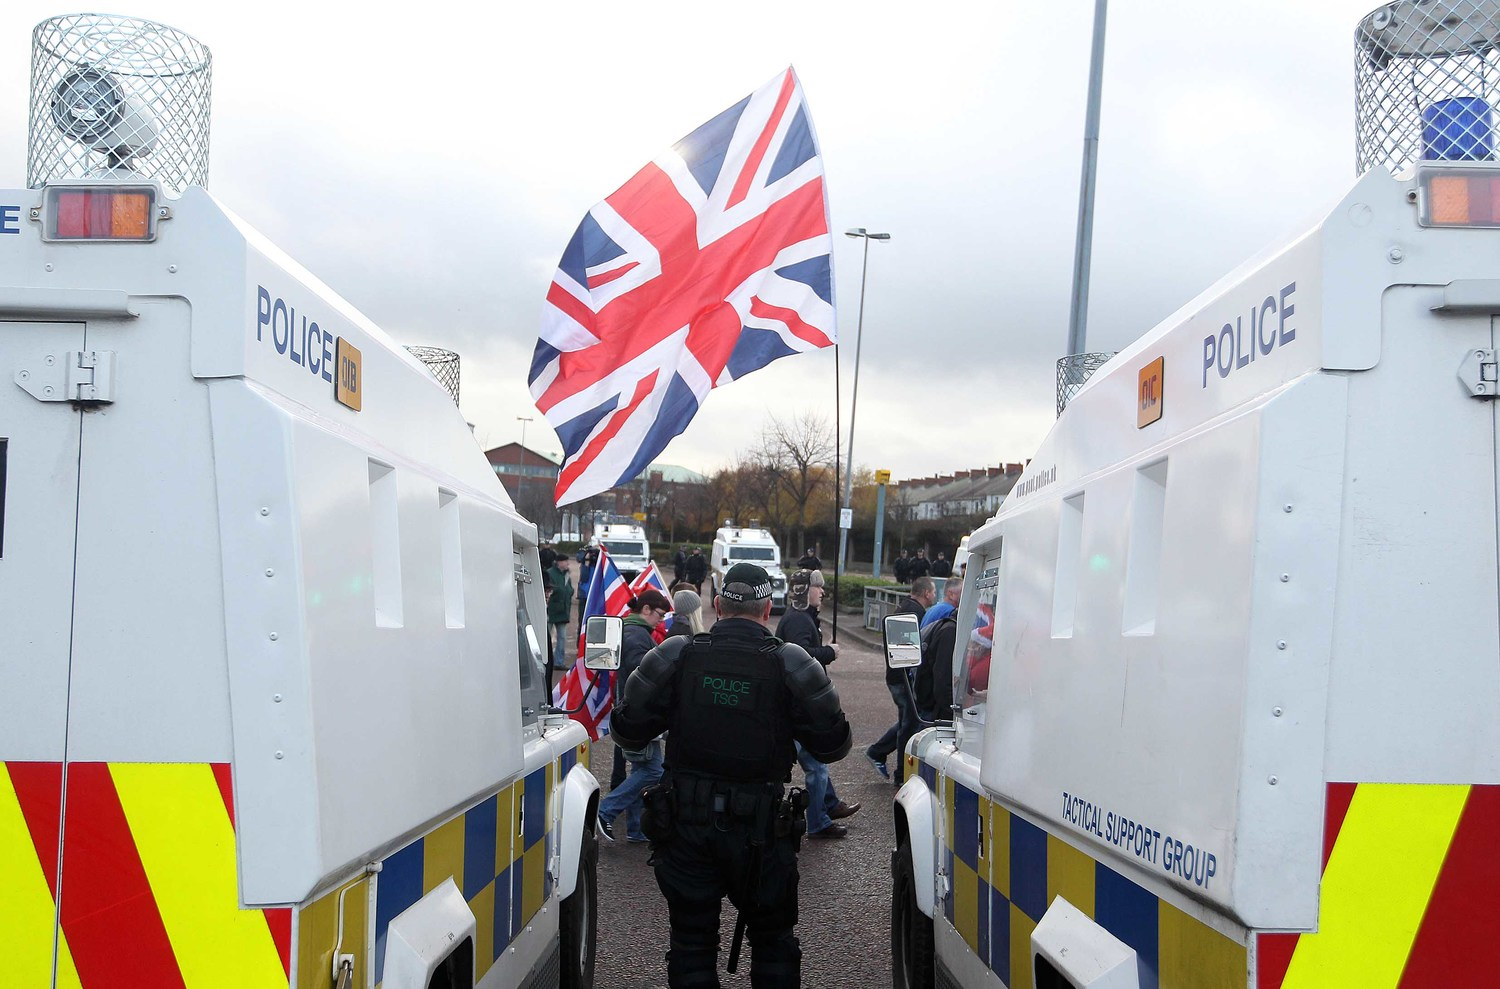 Policing the flag protest